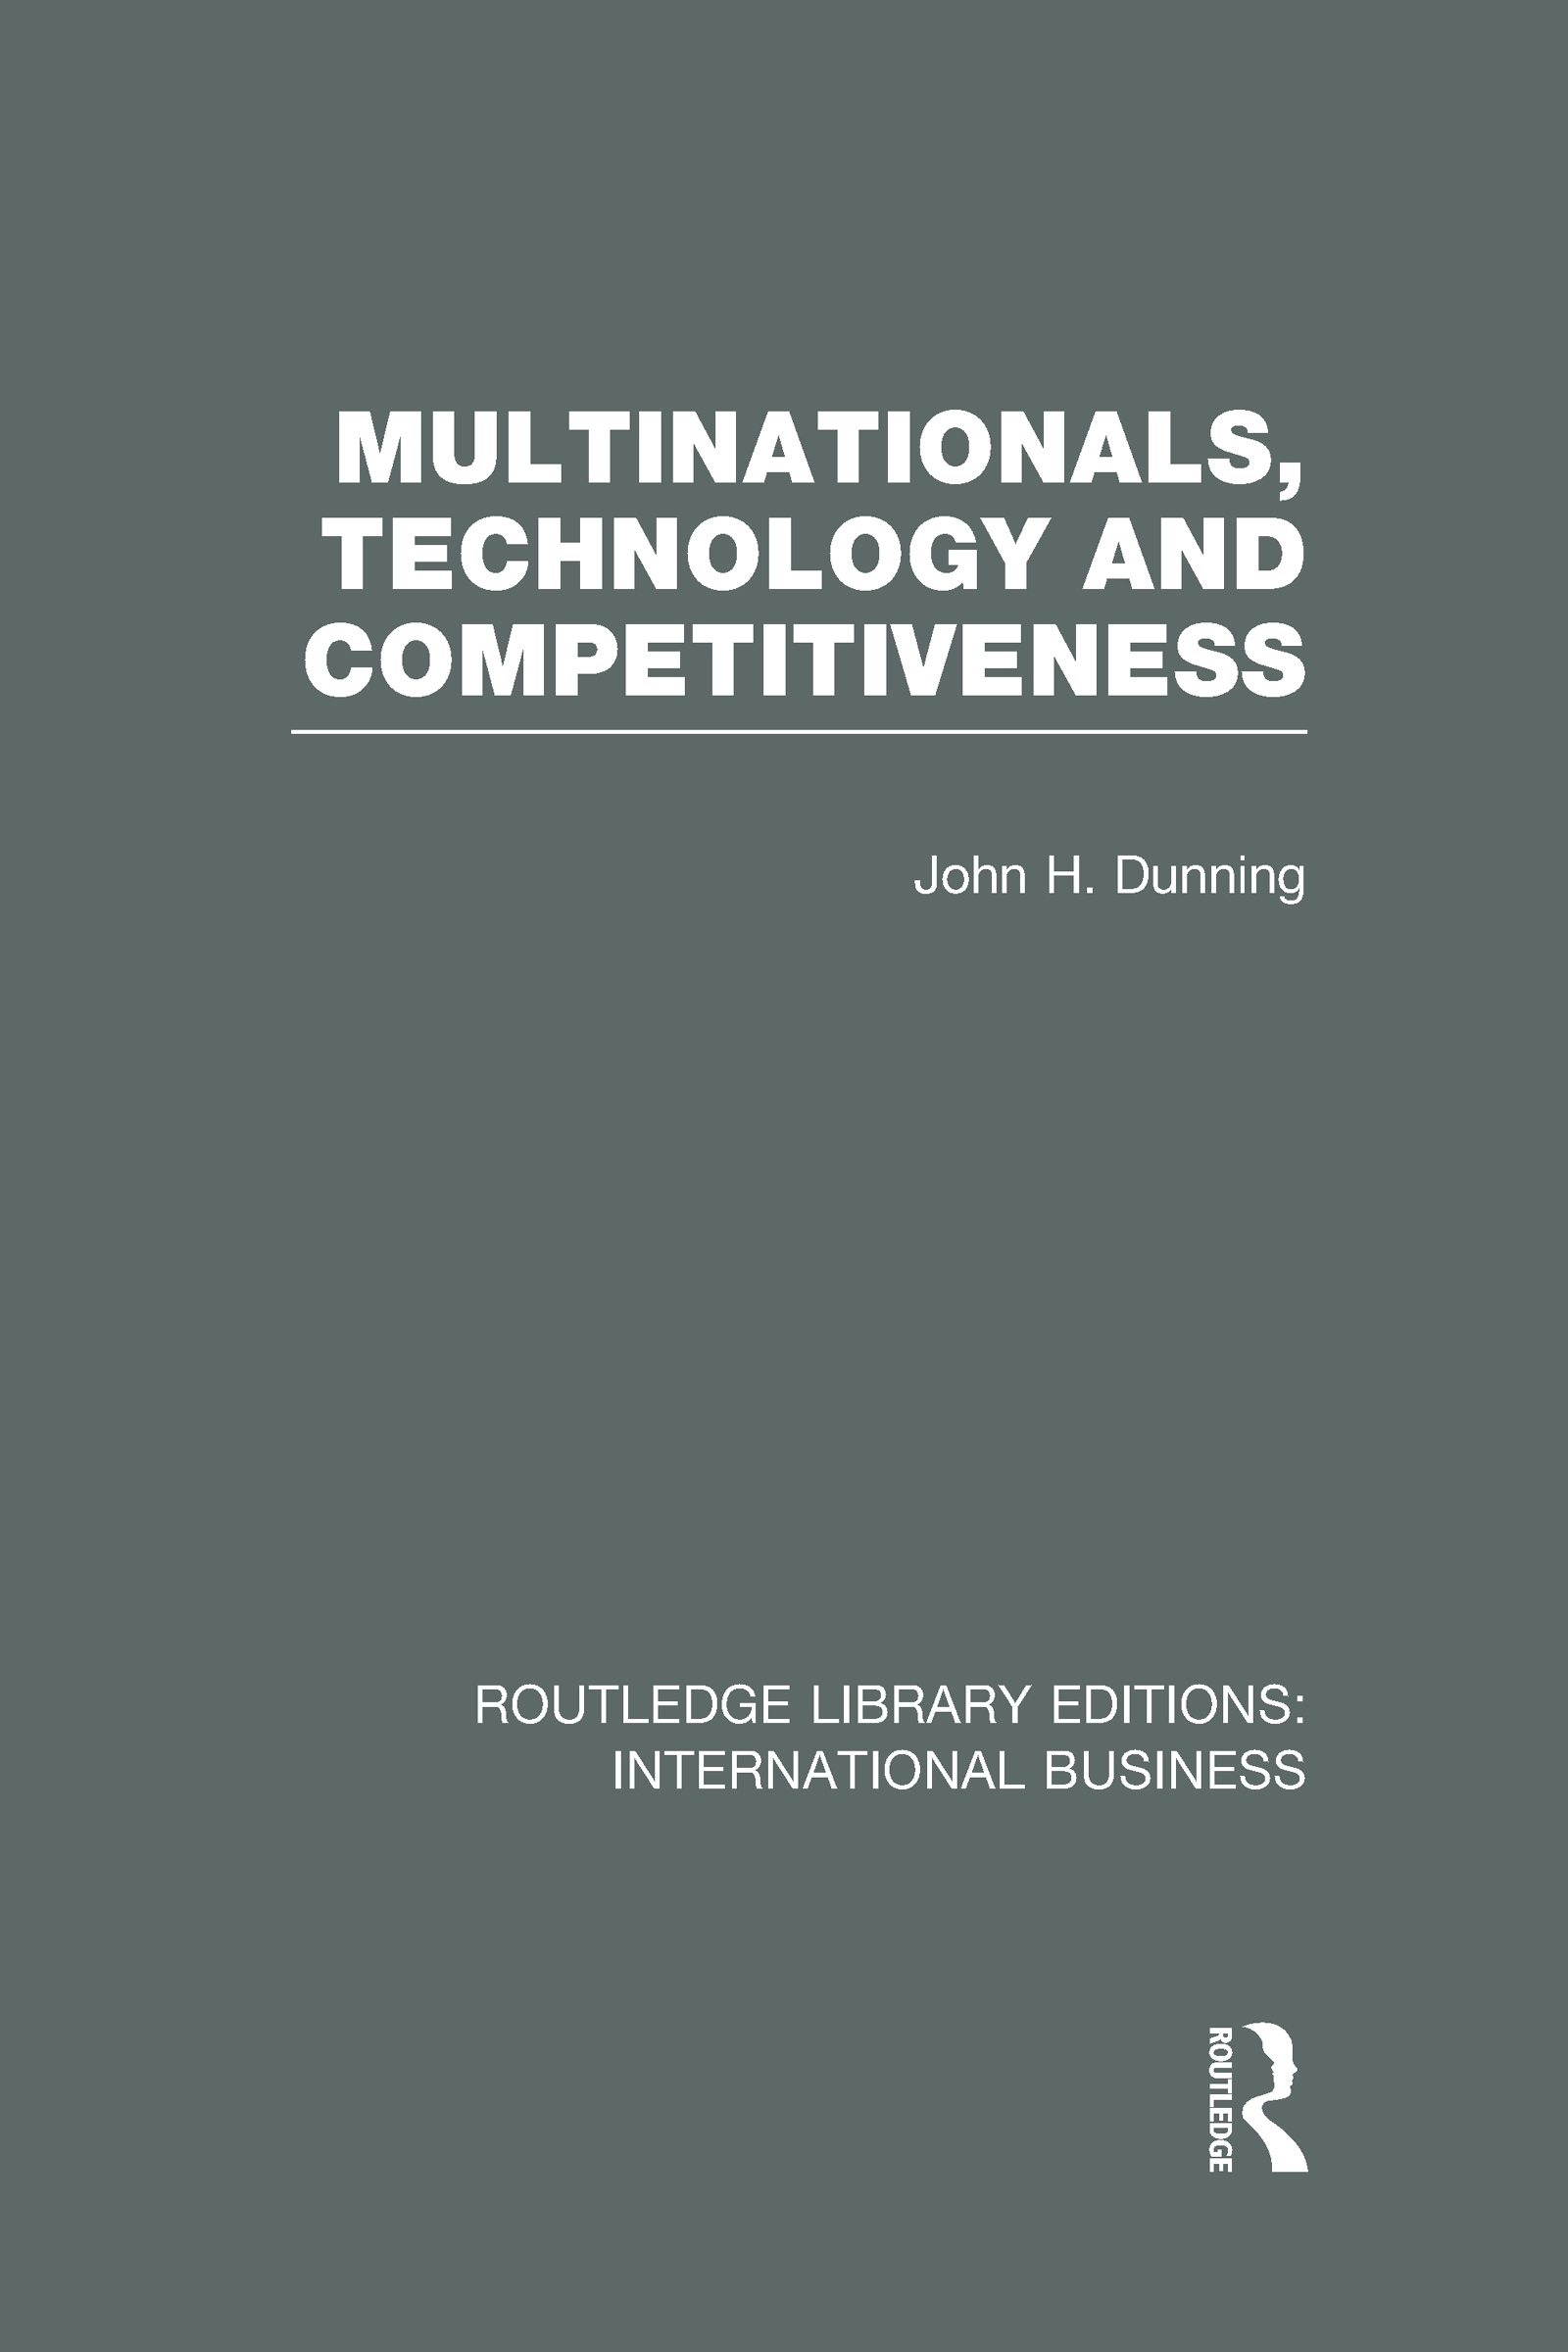 Multinationals, Technology & Competitiveness (RLE International Business) (Hardback) book cover